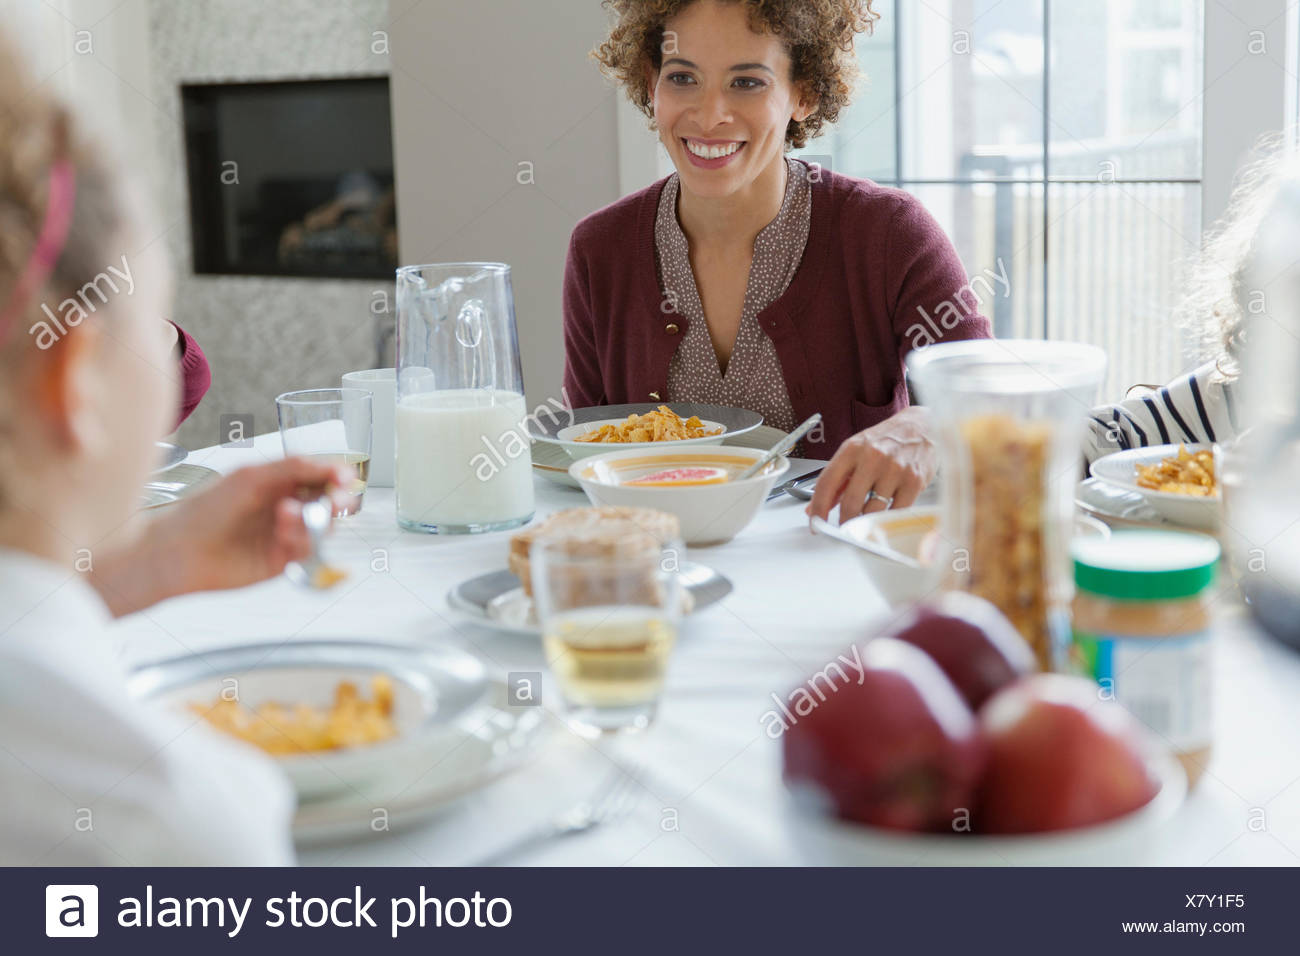 Mother looking at daughter across breakfast table. - Stock Image